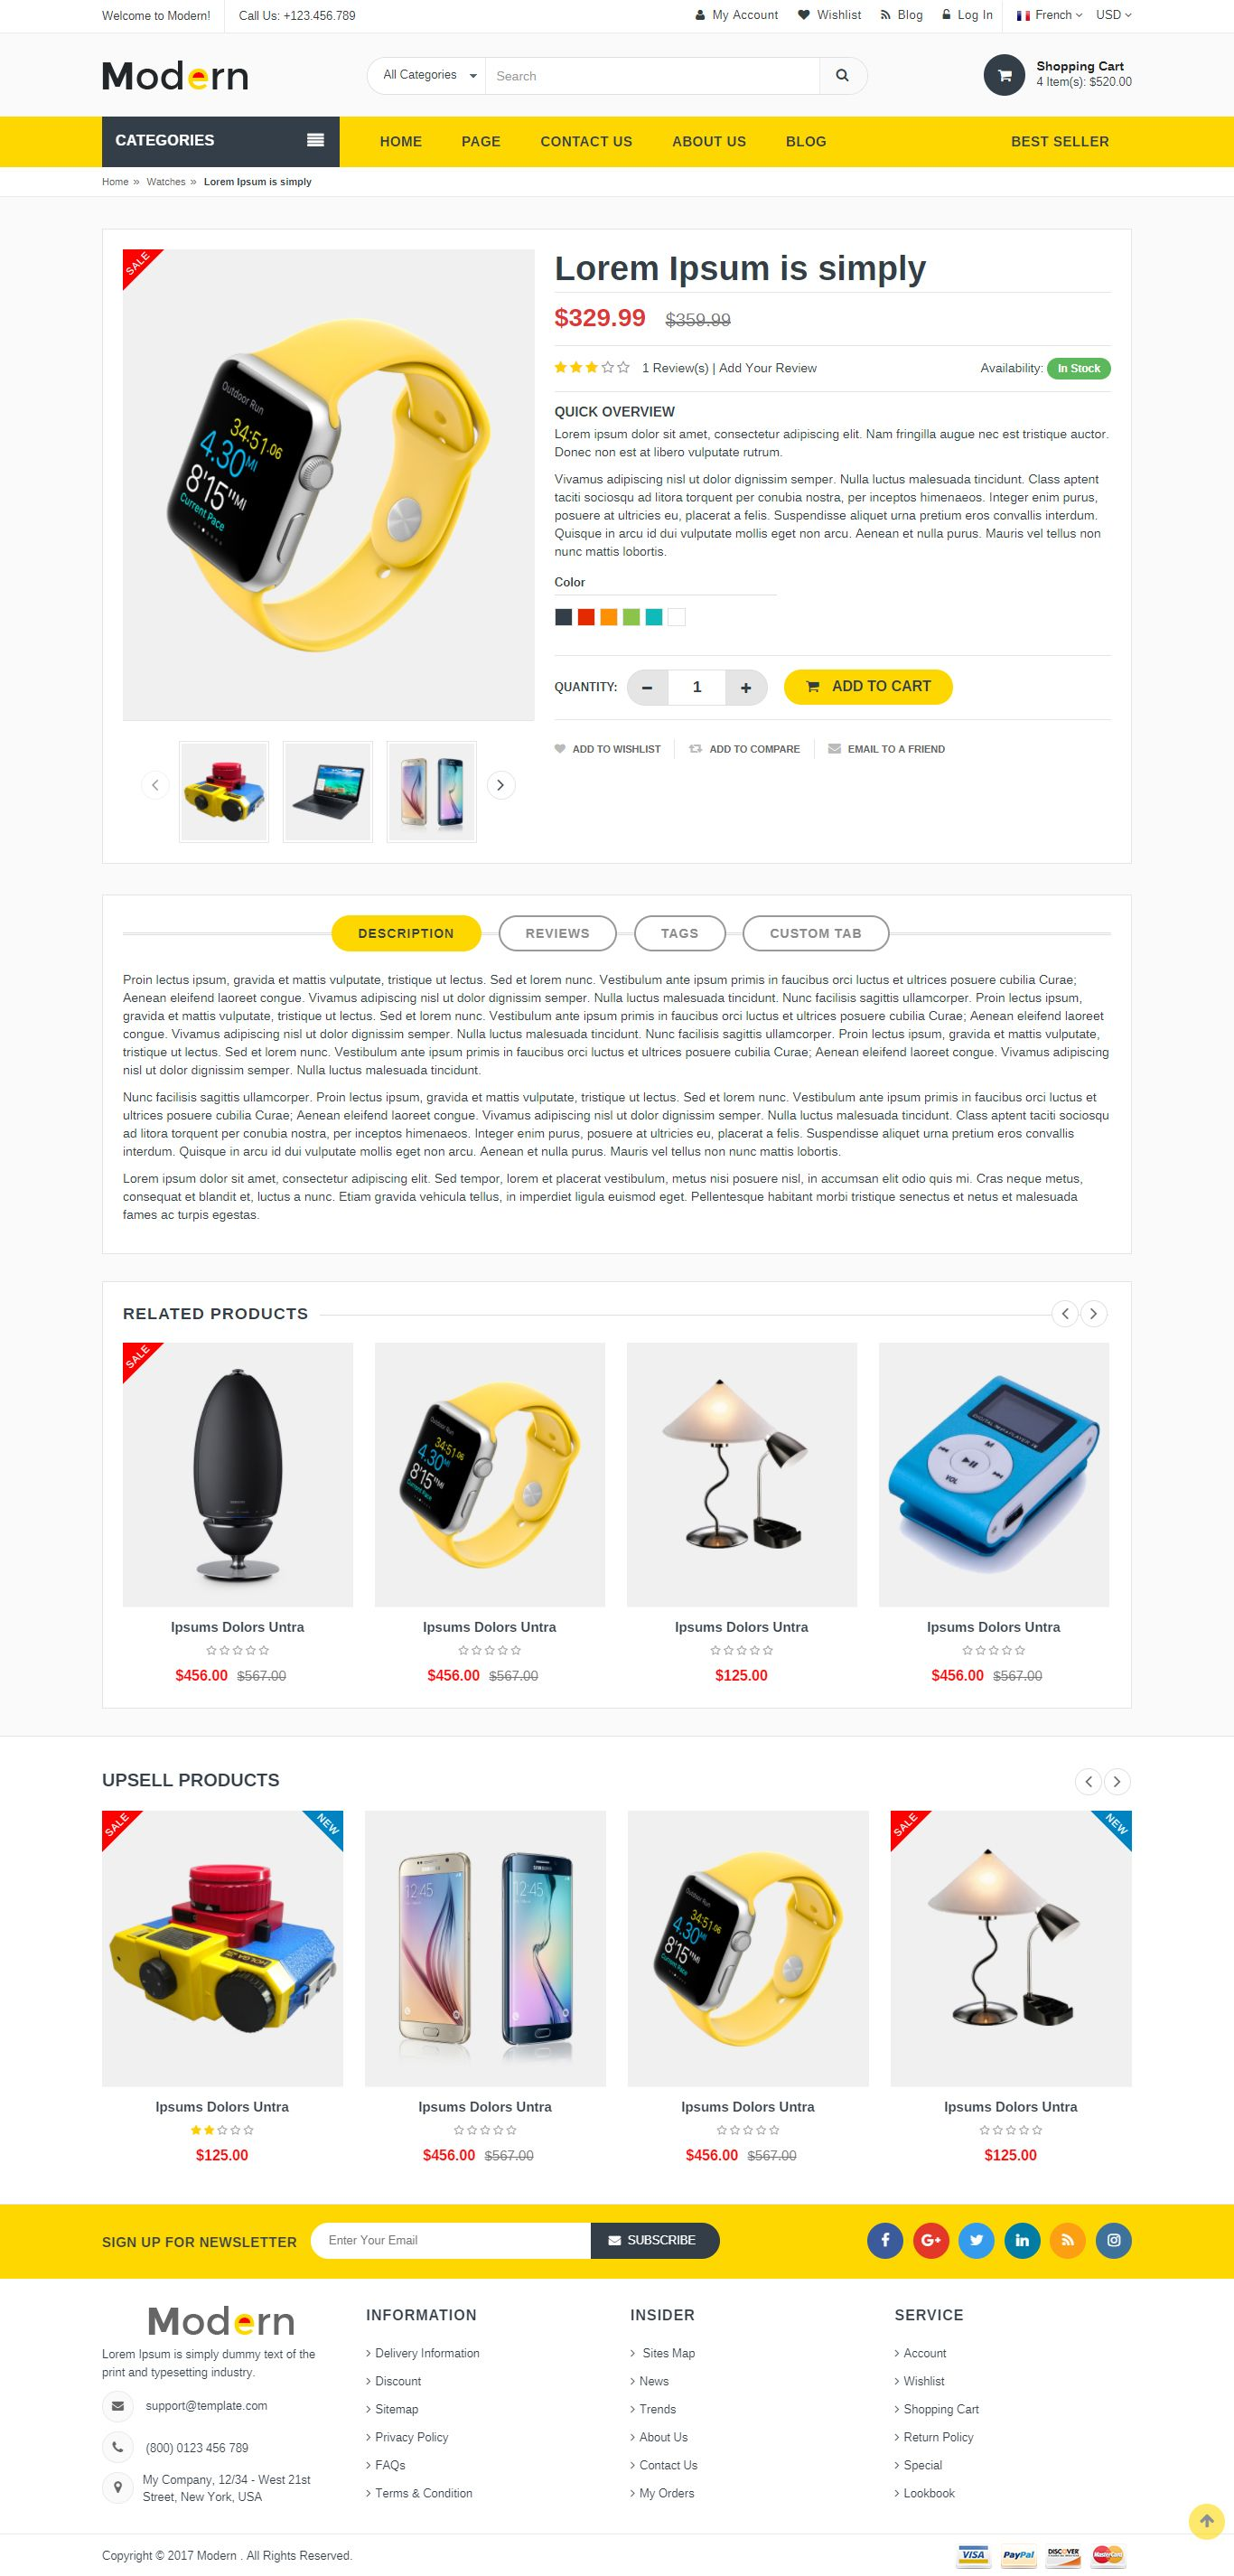 Modern - Multipurpose Website Template Screenshot 1